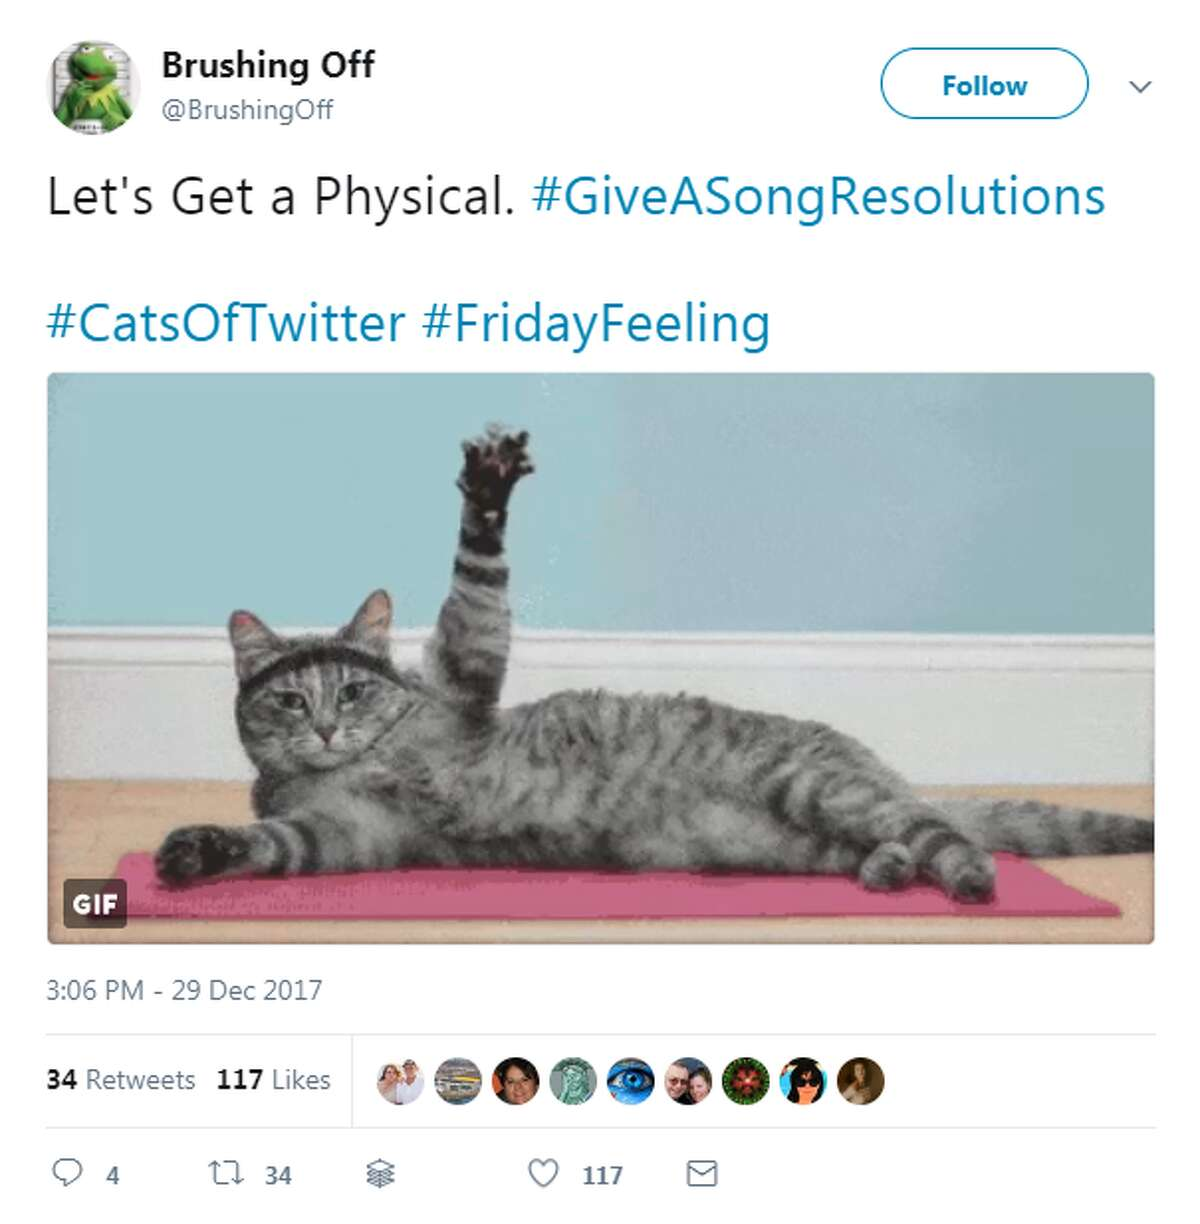 Twitter users share their resolutions in hilarious tweets using the hastag, #GiveASongResolutions. Photo: Twitter